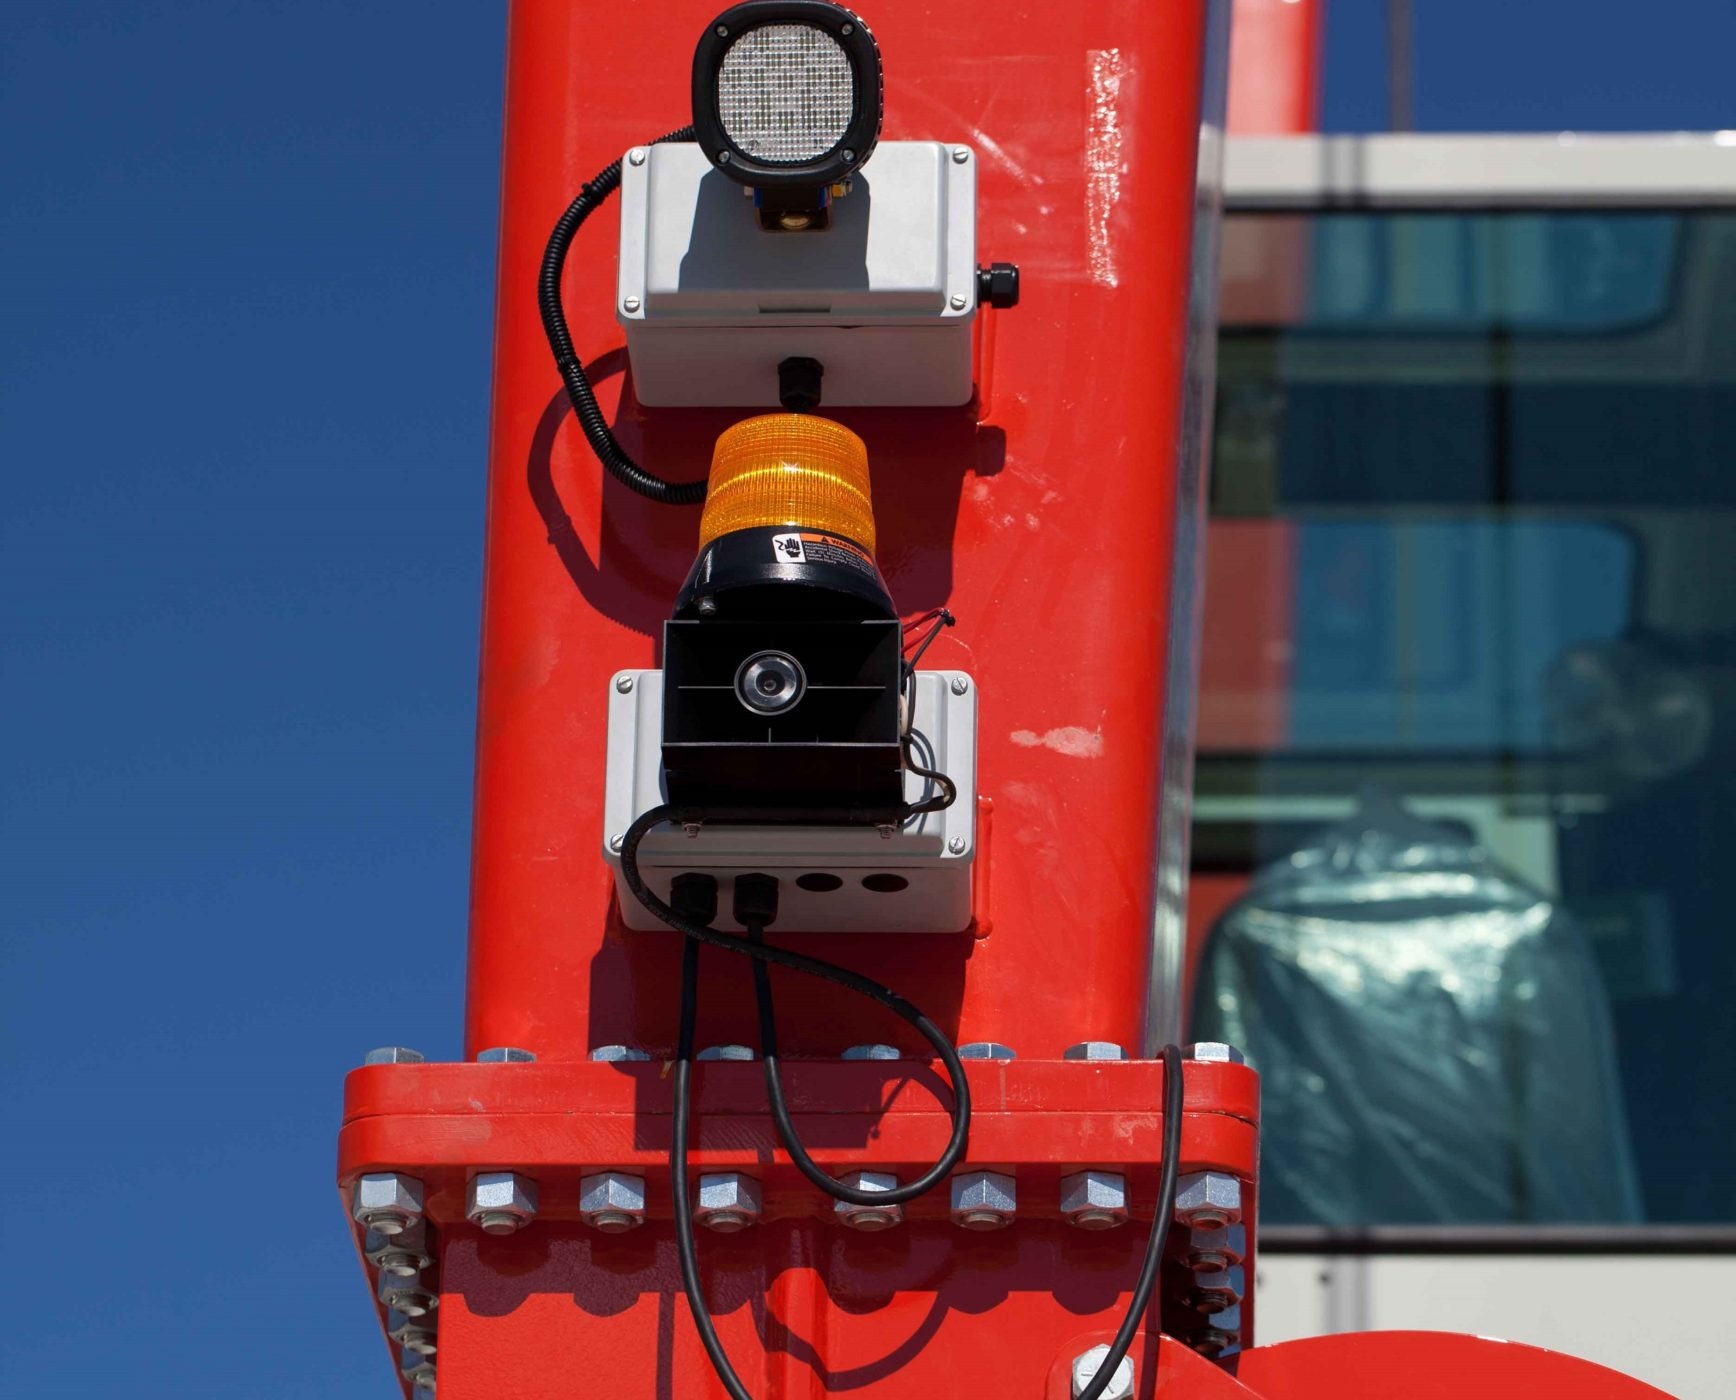 4 Crane LED Lights and Alarms for Material Handling Safety